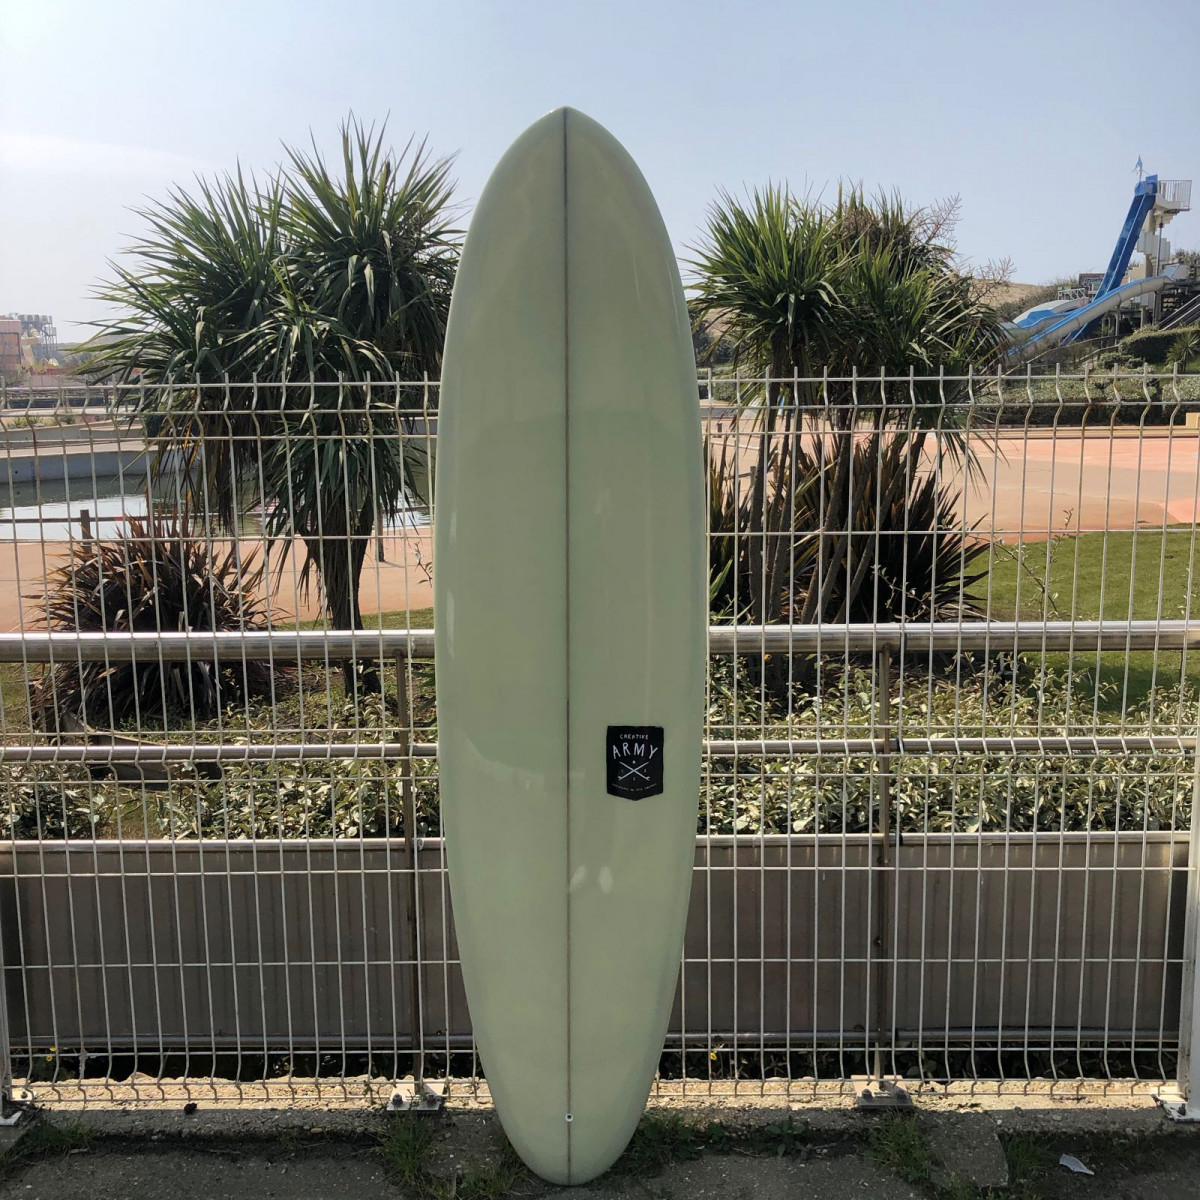 Surf Midlenght Creative army huevo 6'10